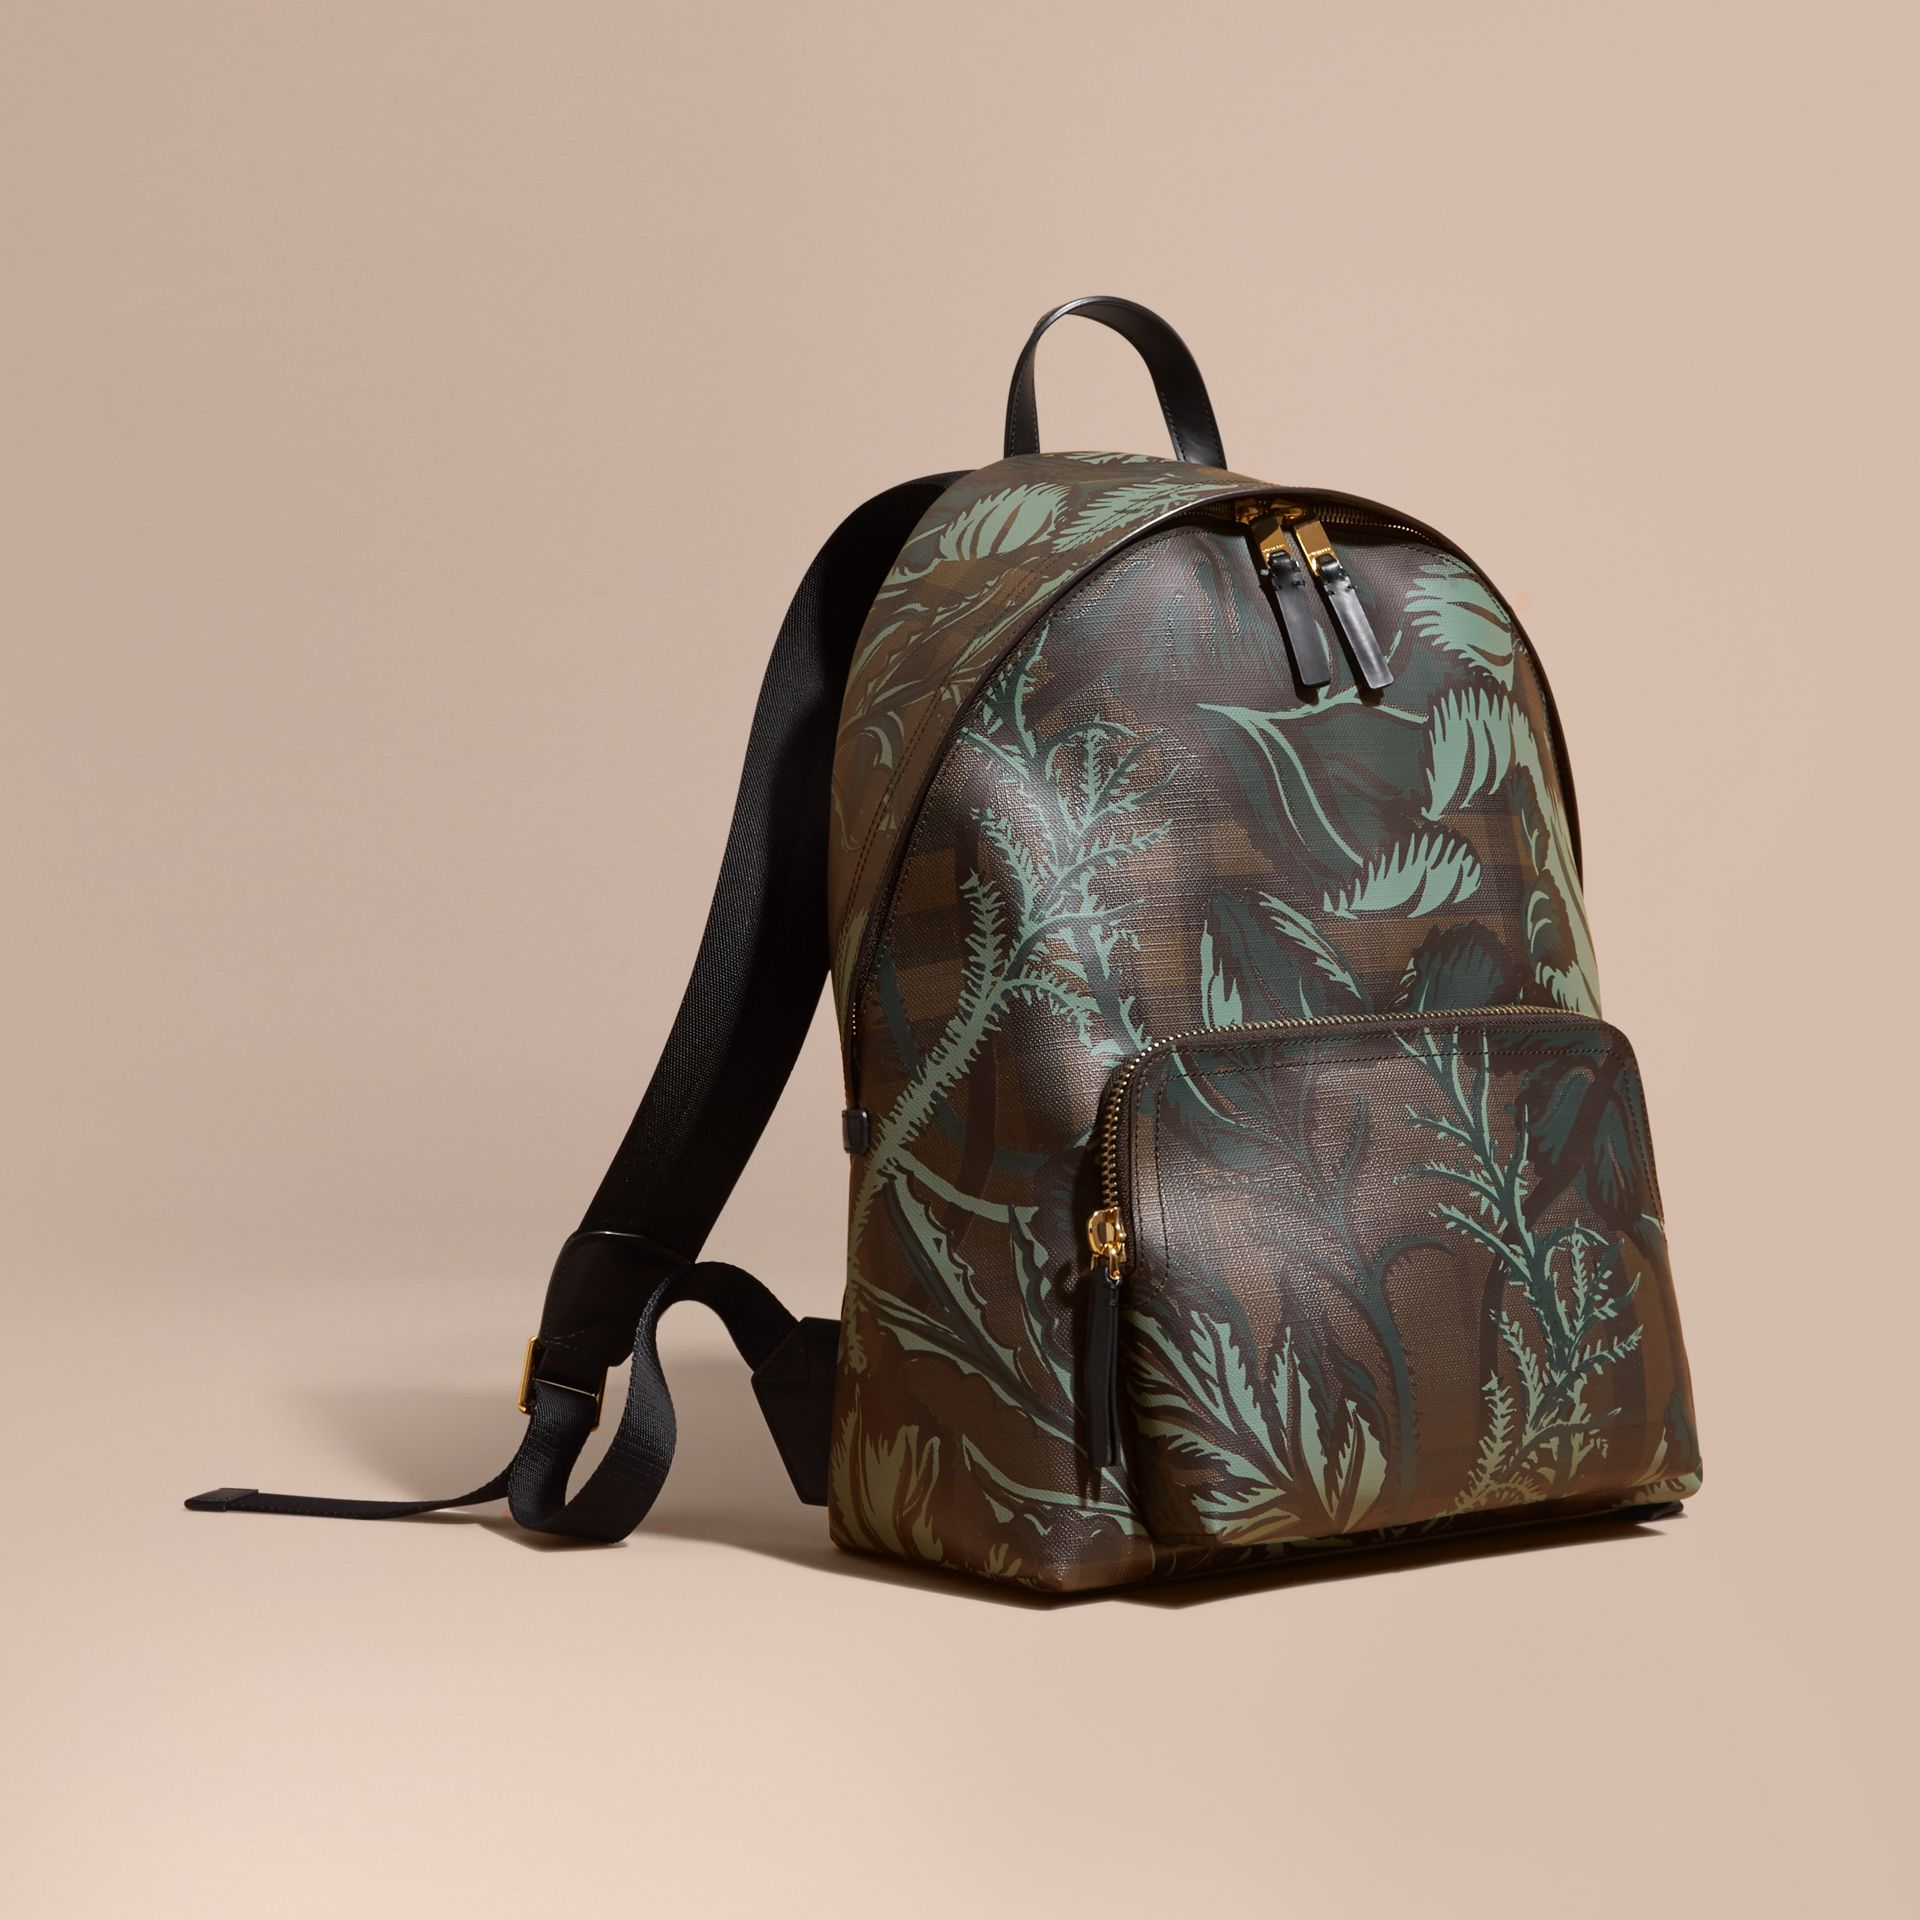 Leather Trim Floral Print London Check Backpack Chocolate - gallery image 1